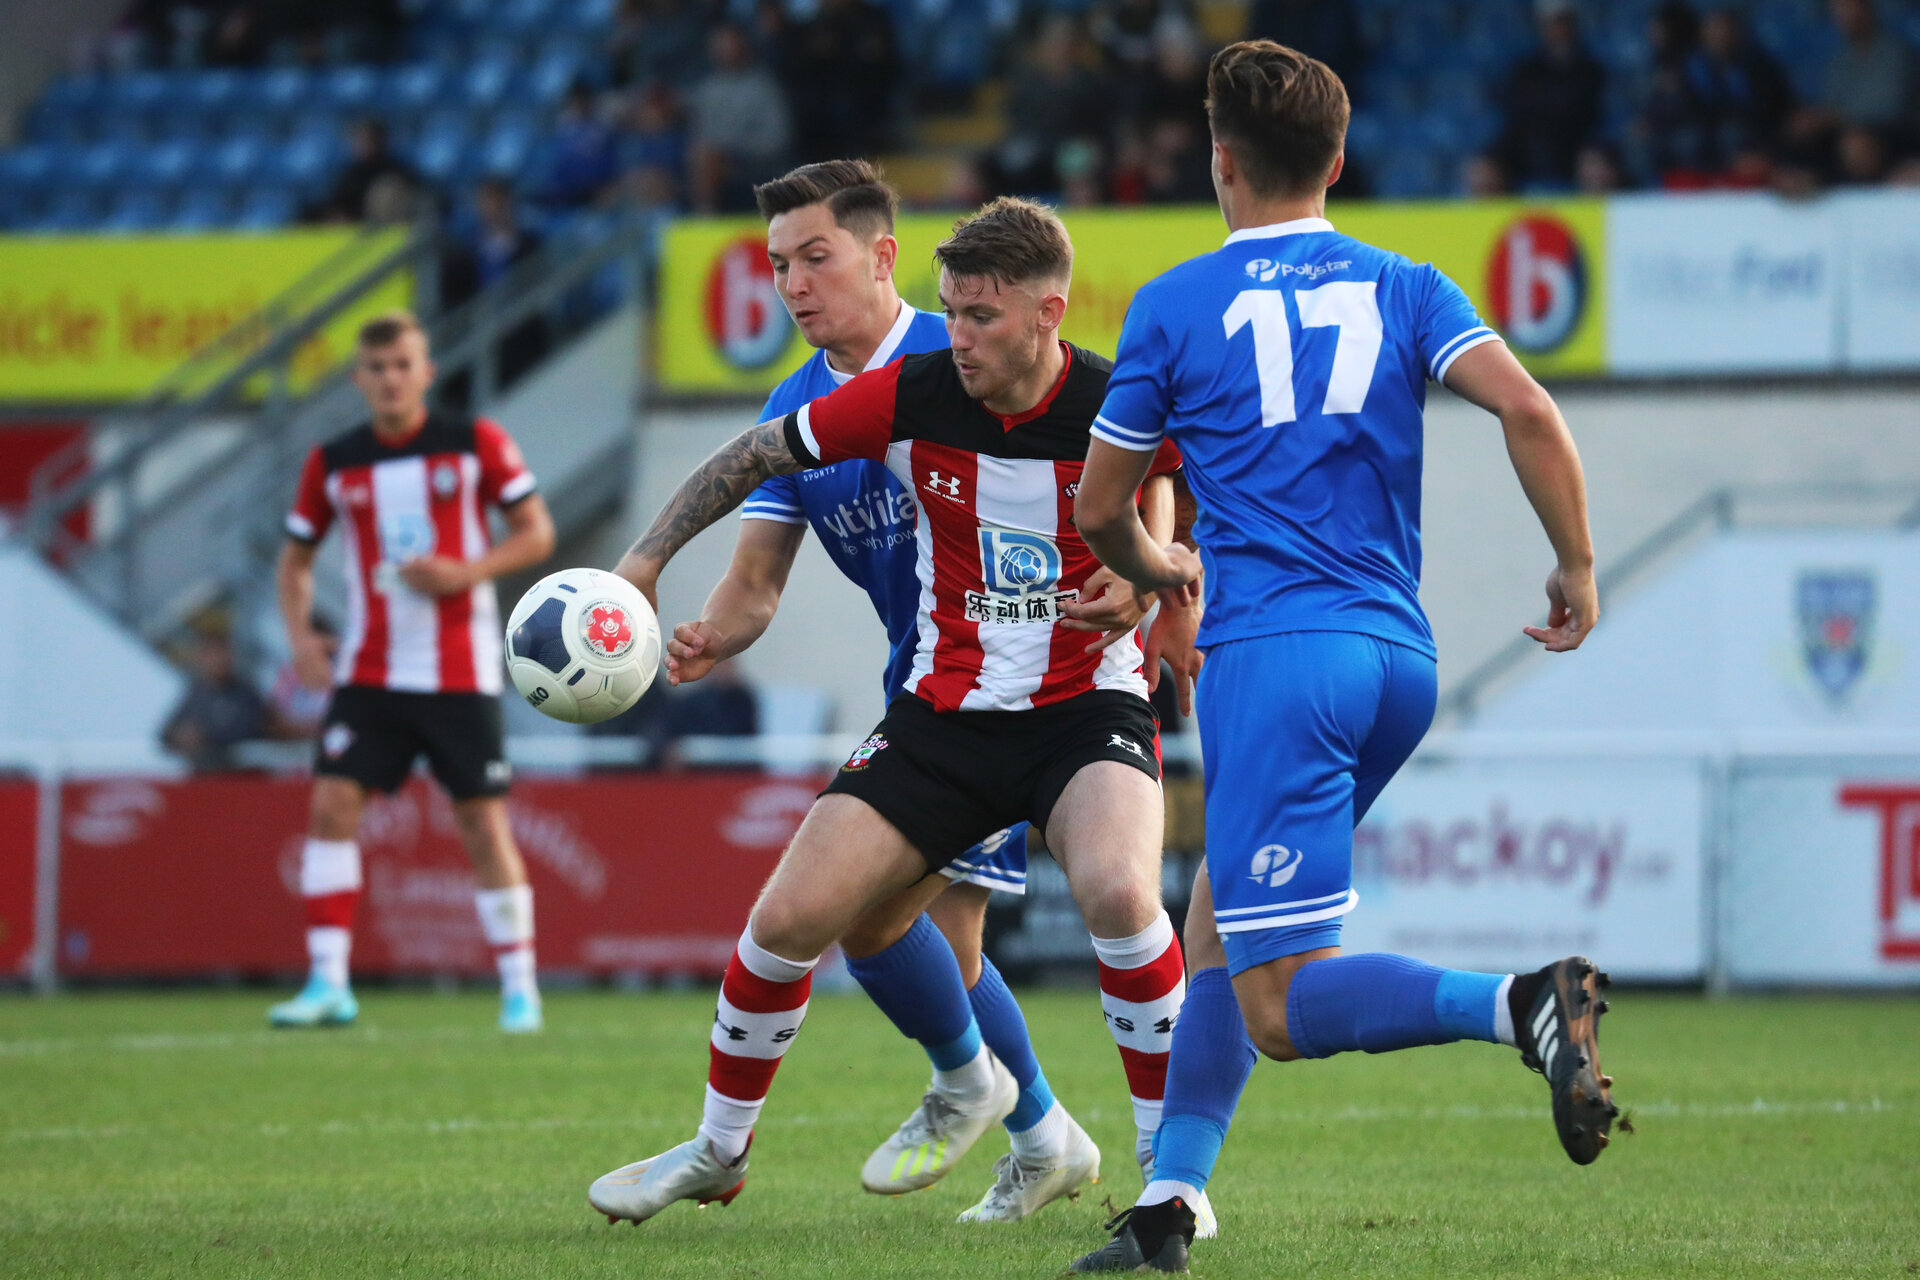 EASTLEIGH, ENGLAND, JULY 30: Callum Slattery of Southampton FC during the pre-season friendly match between Eastleigh FC and Southampton U23s at Silverlake Stadium, Eastleigh, on Tuesday 30th July, 2019